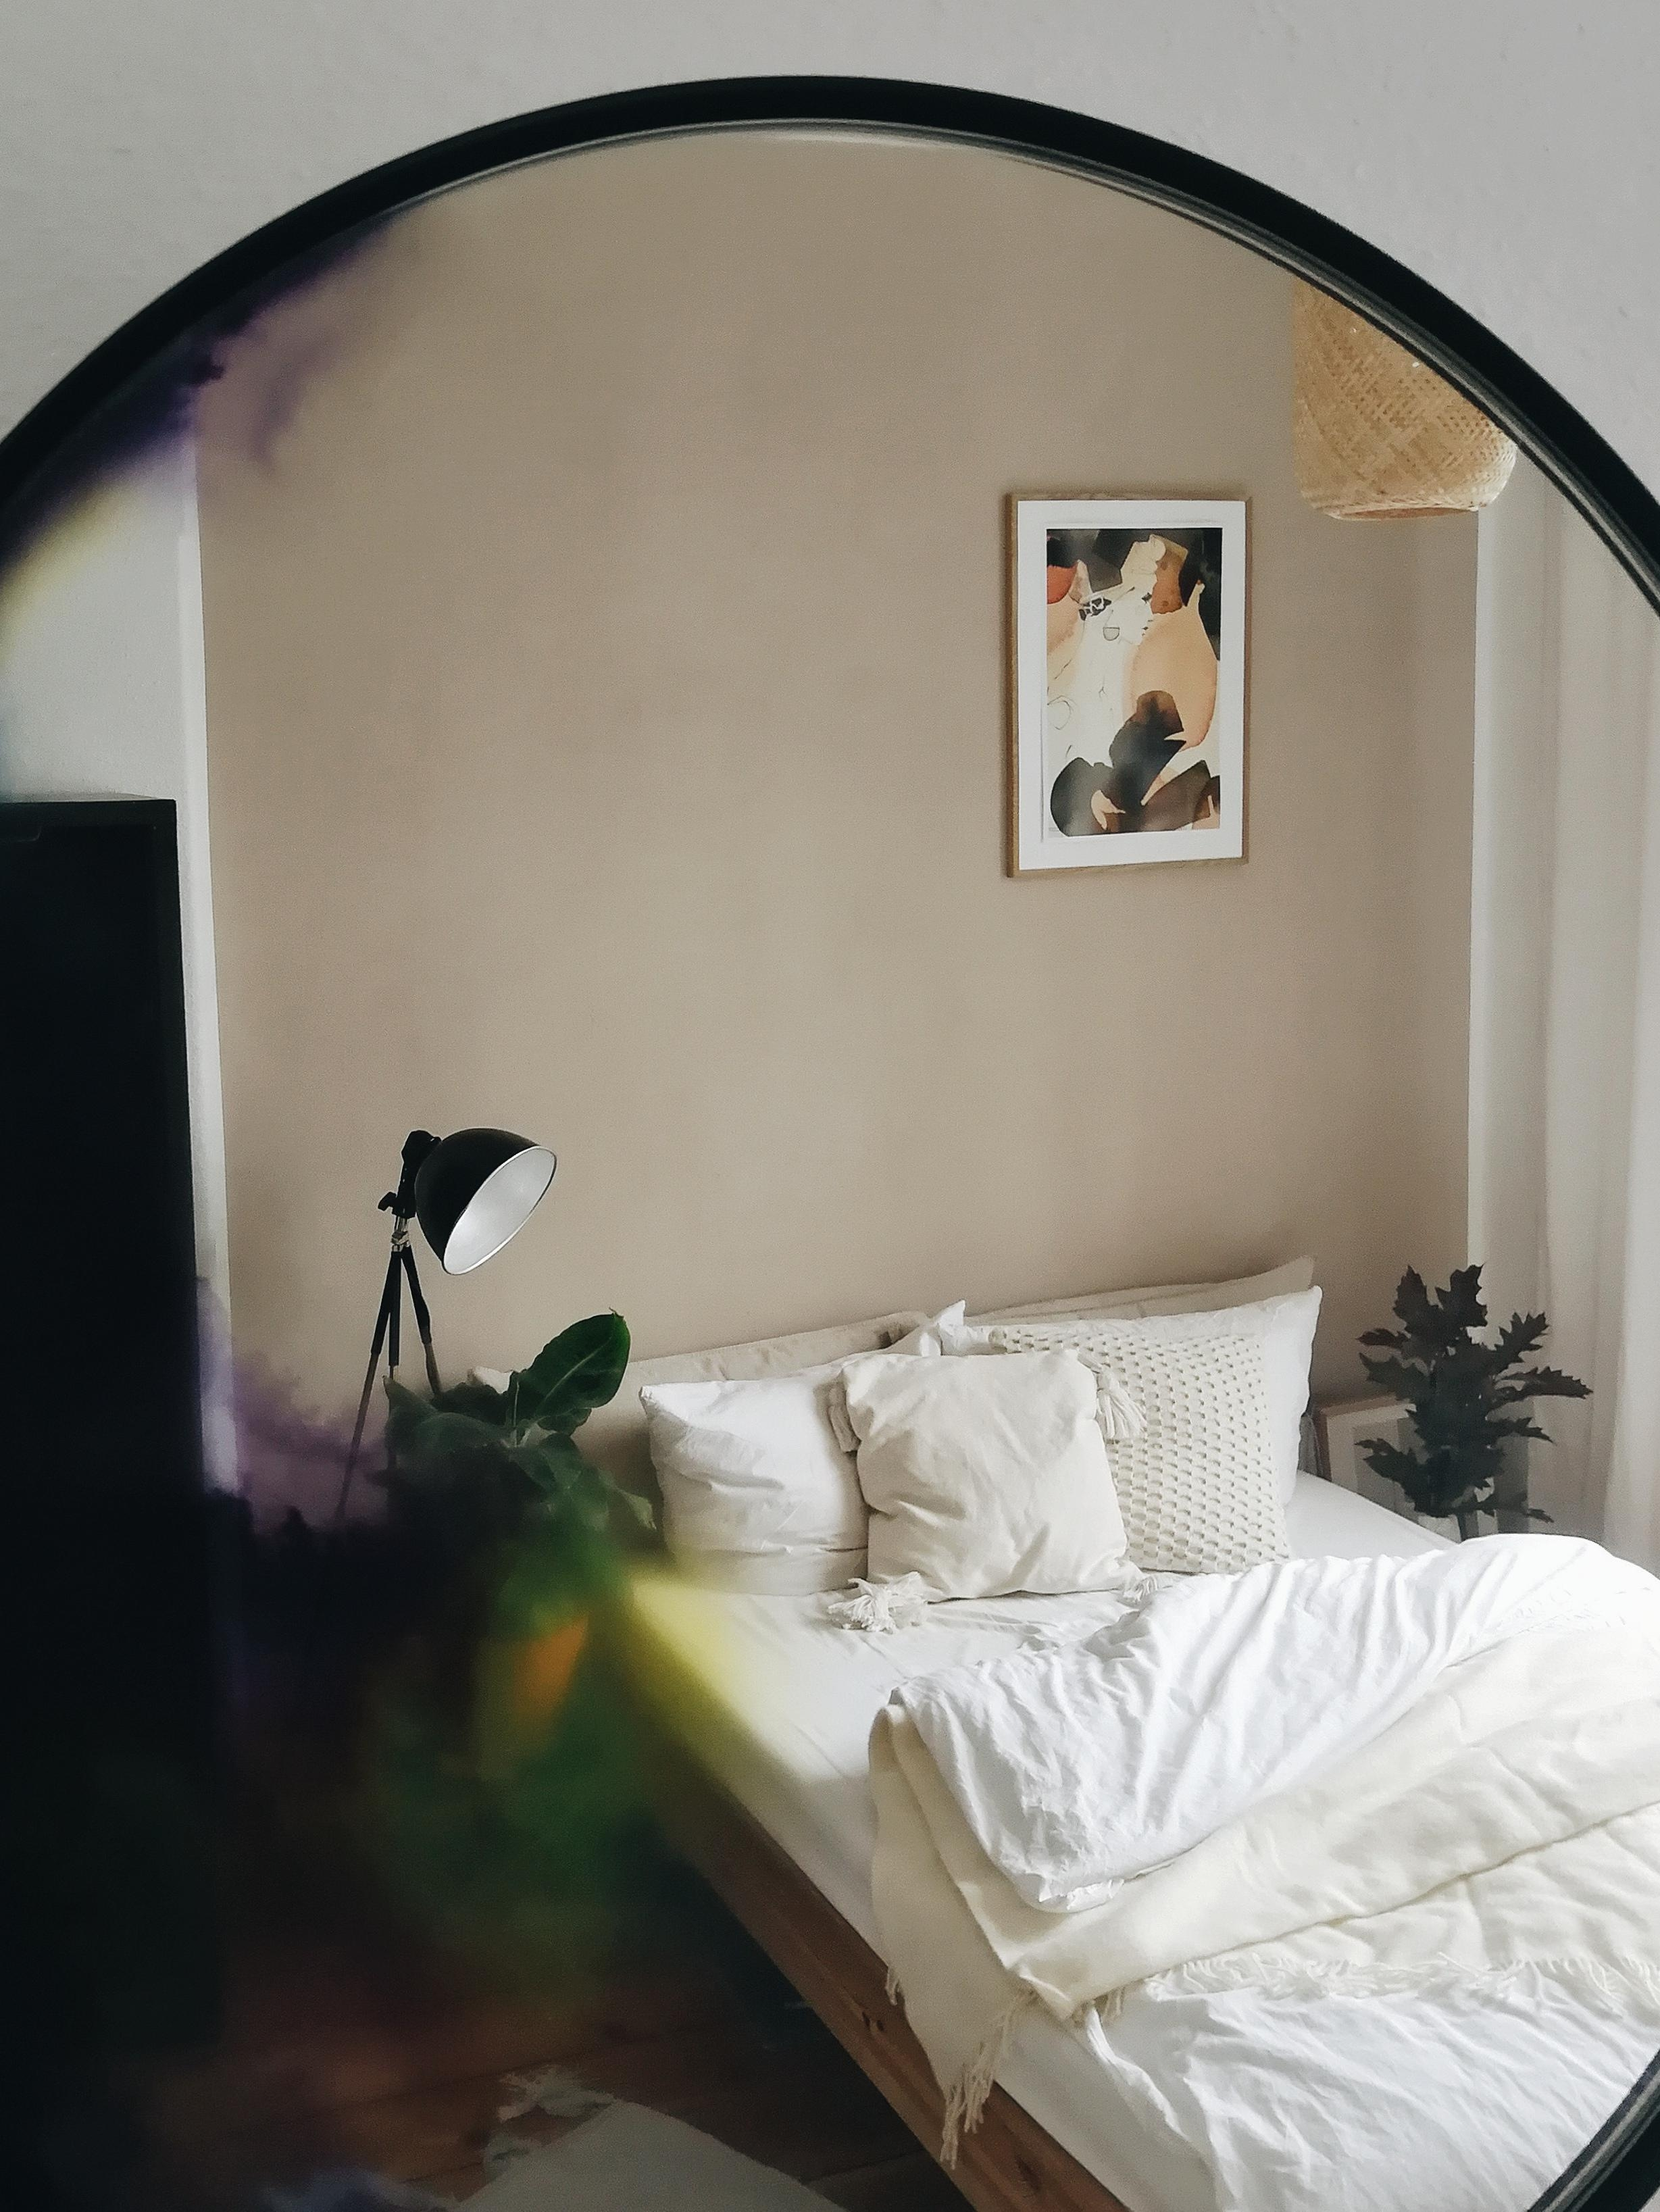 #schlafzimmer #bedroom #bedroominspo